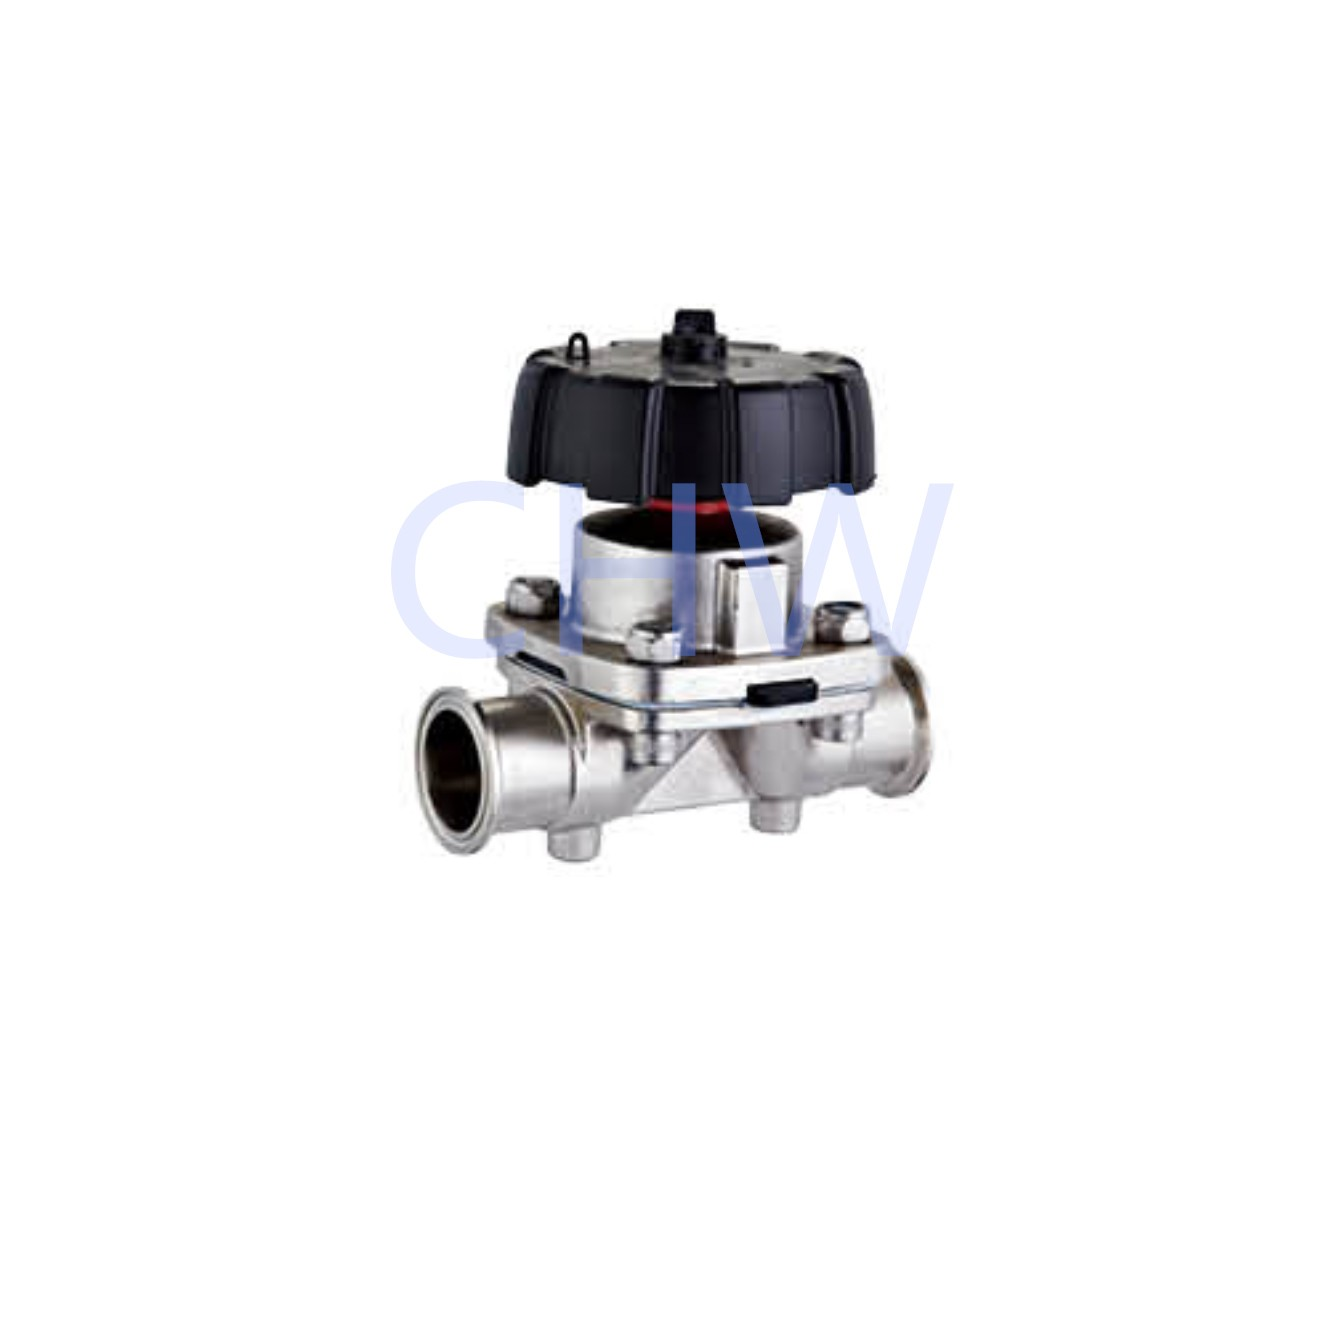 Sanitary stainless steel high quality Manualy Operated Diaphragm Vlave ss304 ss316L DIN SMS ISO 3A BPE IDF AS BS